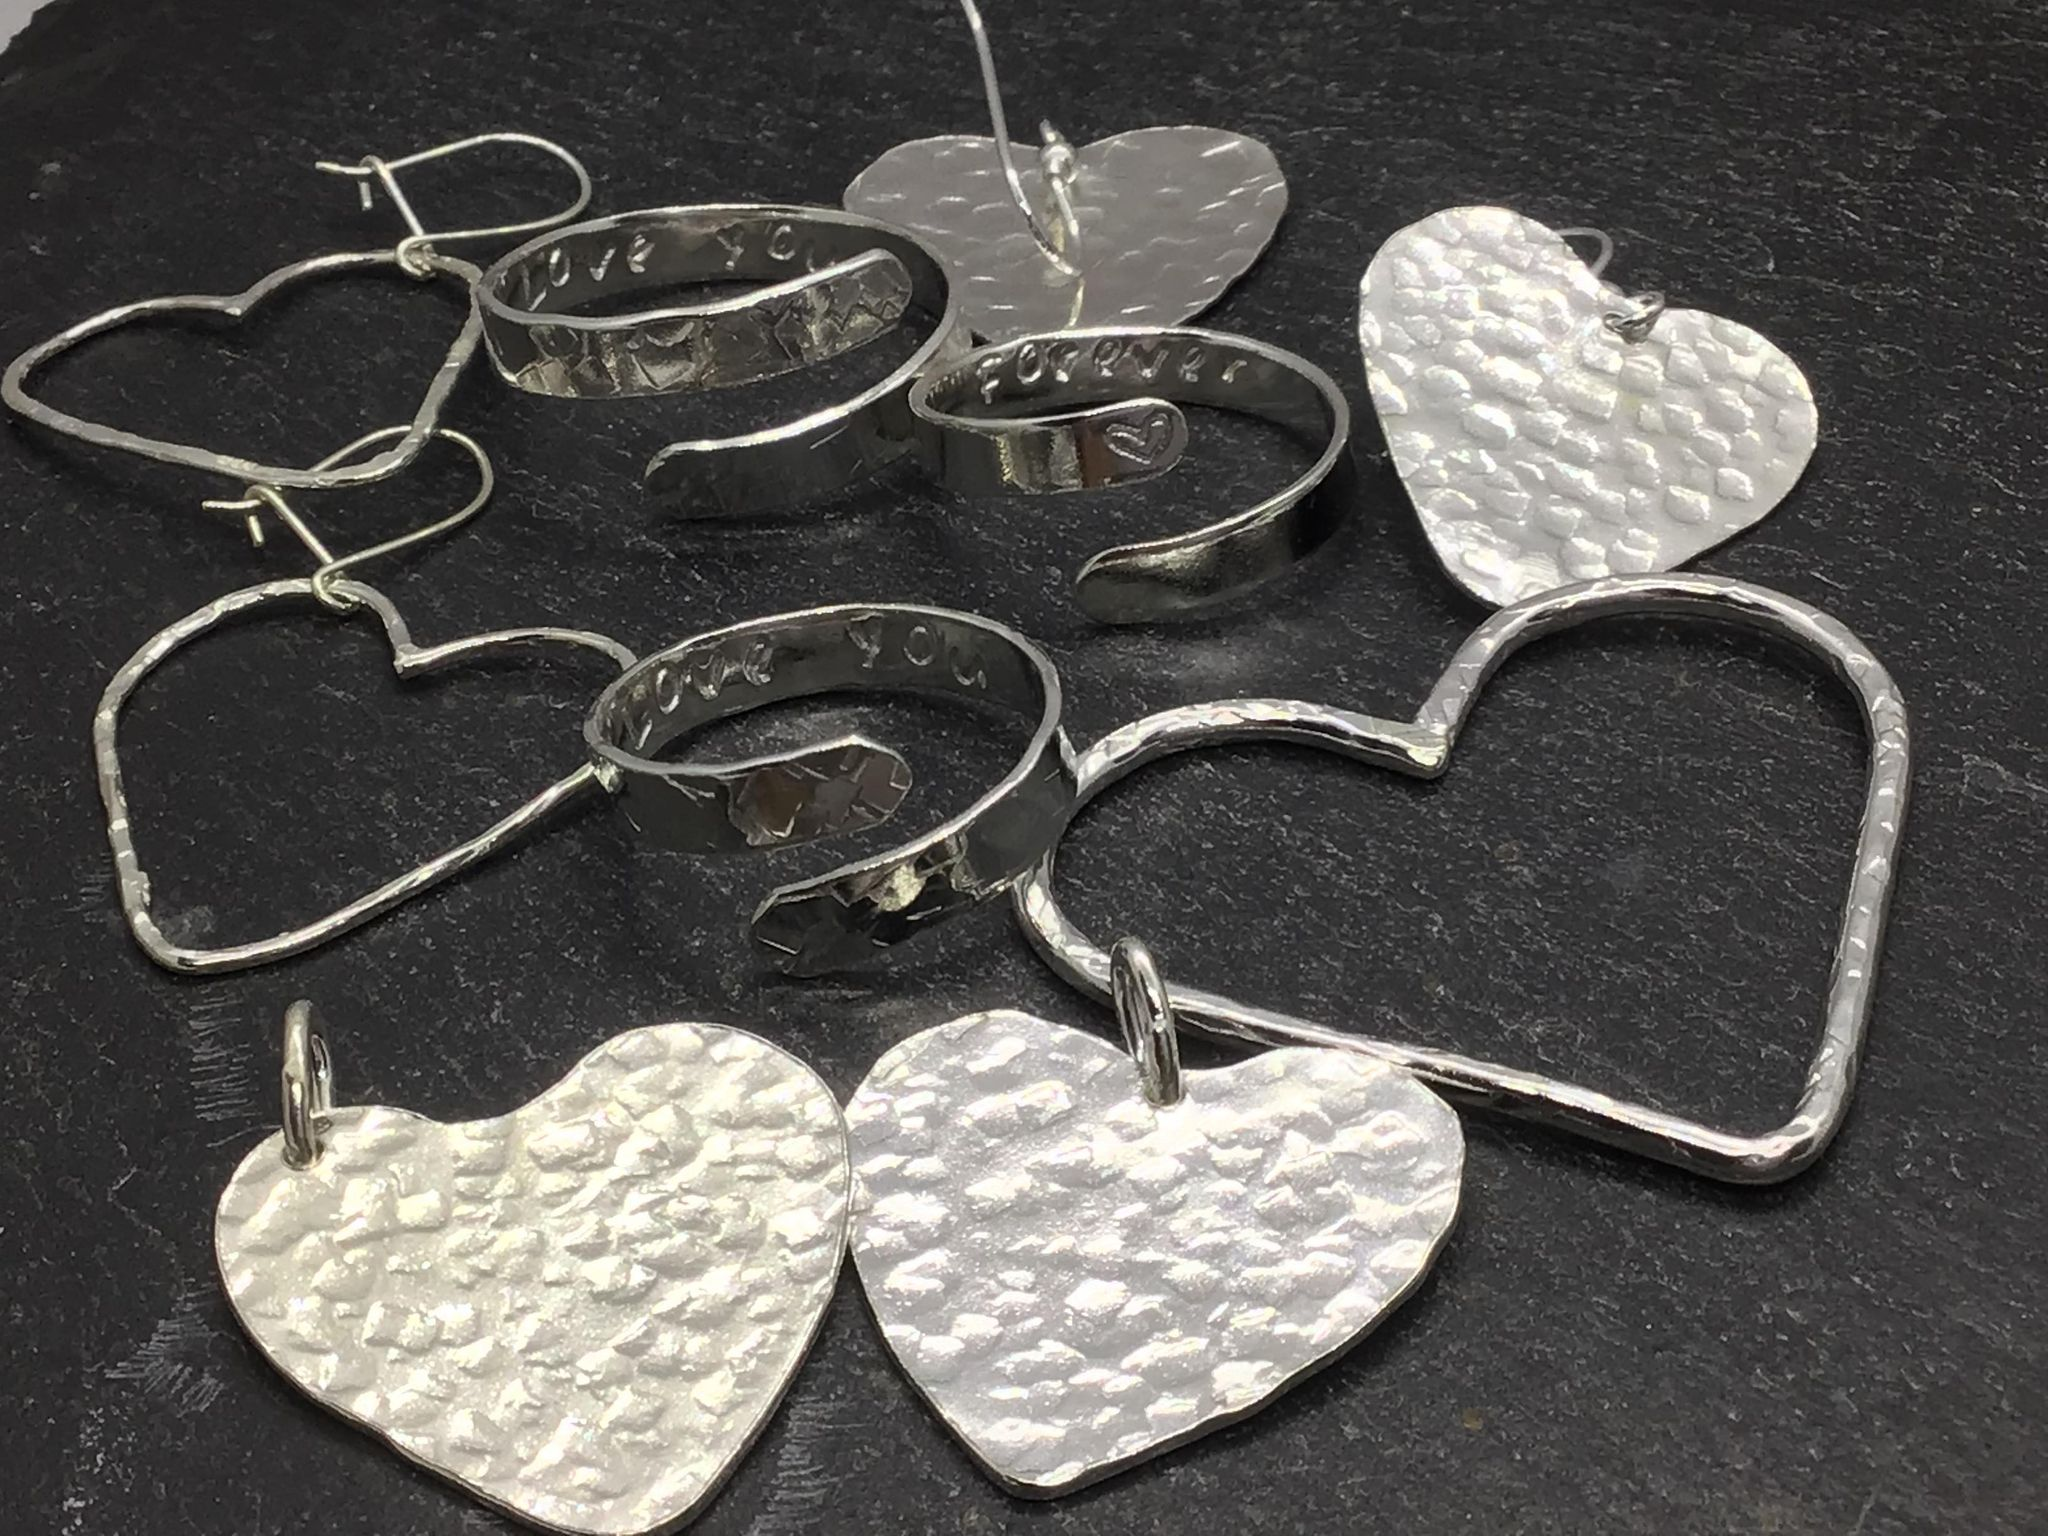 Beautiful handmade silver hearts make great Valentines gifts from Joon Silver